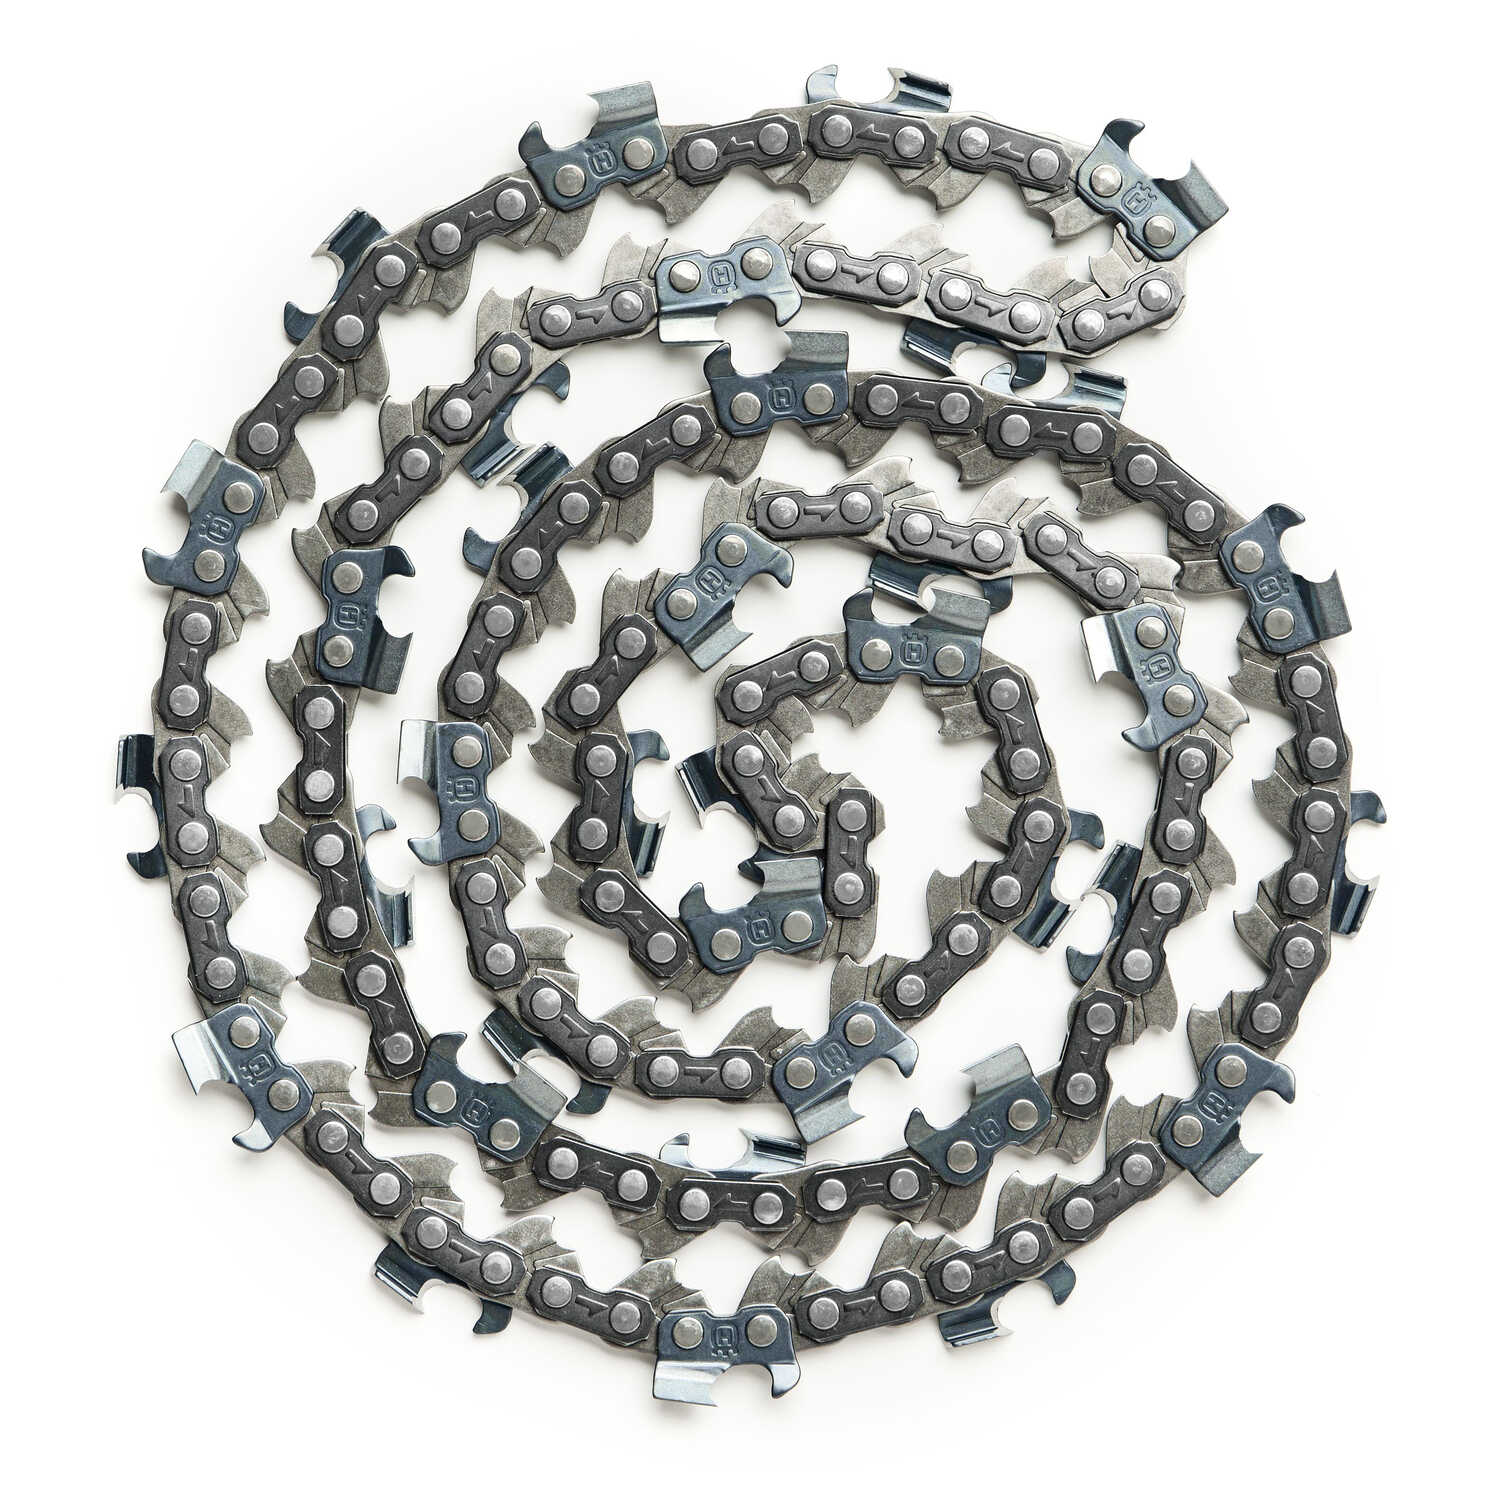 Husqvarna 24 in  84 links Chainsaw Chain - Ace Hardware